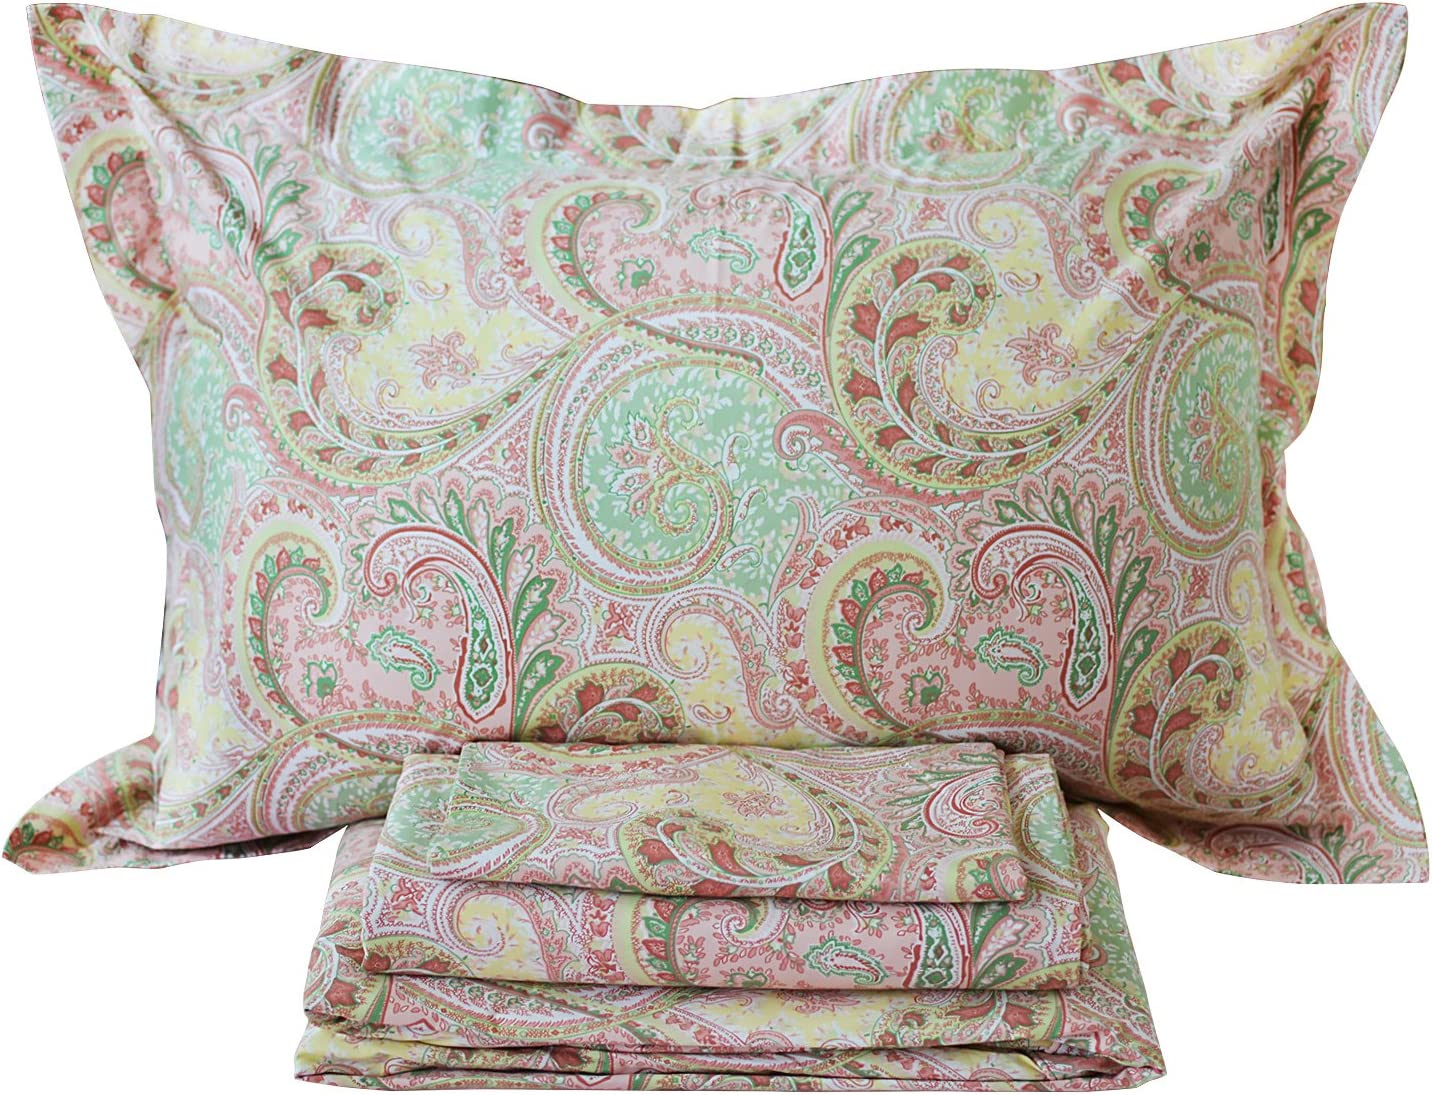 4 Piece Pink Paisley Bed Sheet Set